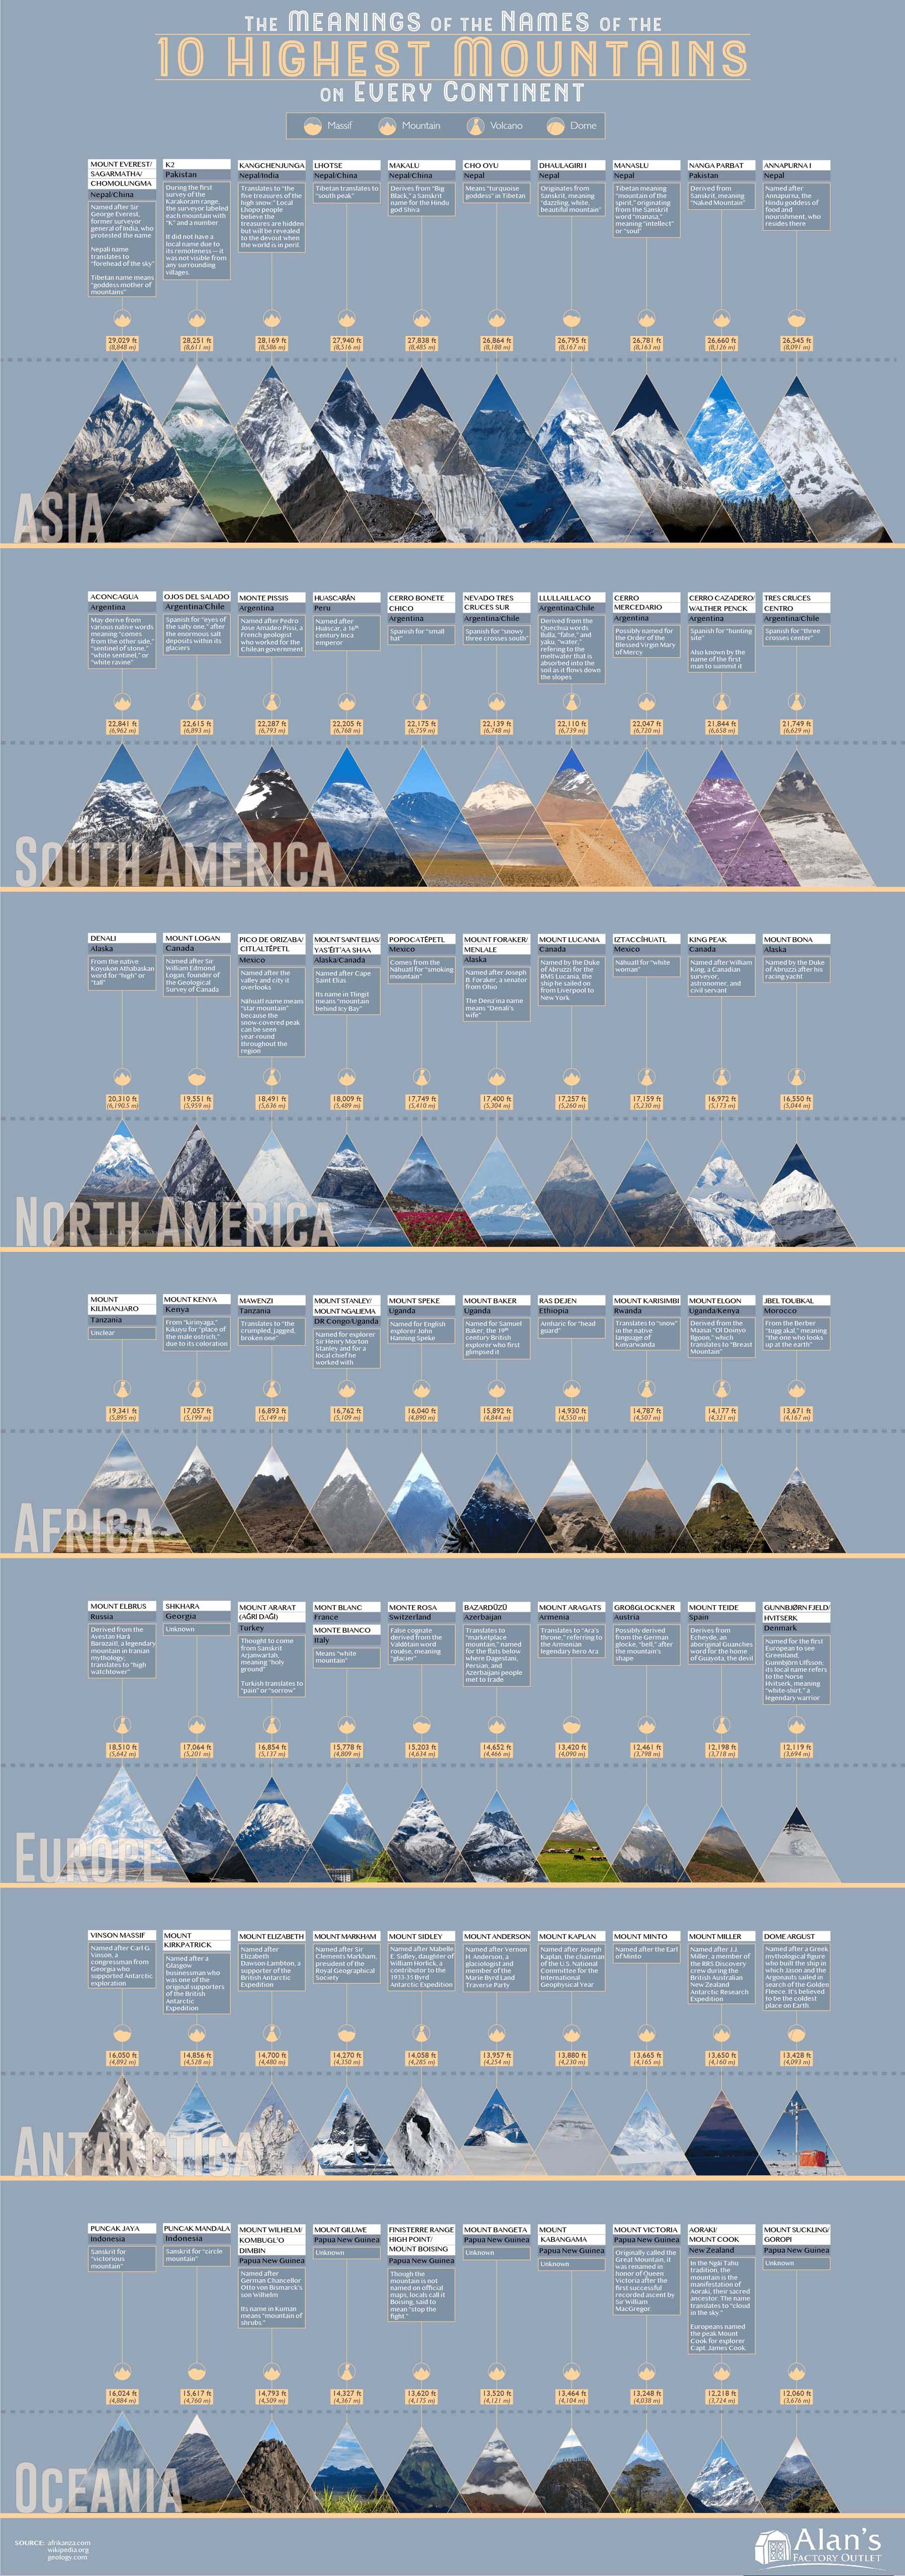 Meanings of the Names of the 10 Highest Mountains on Every Continent